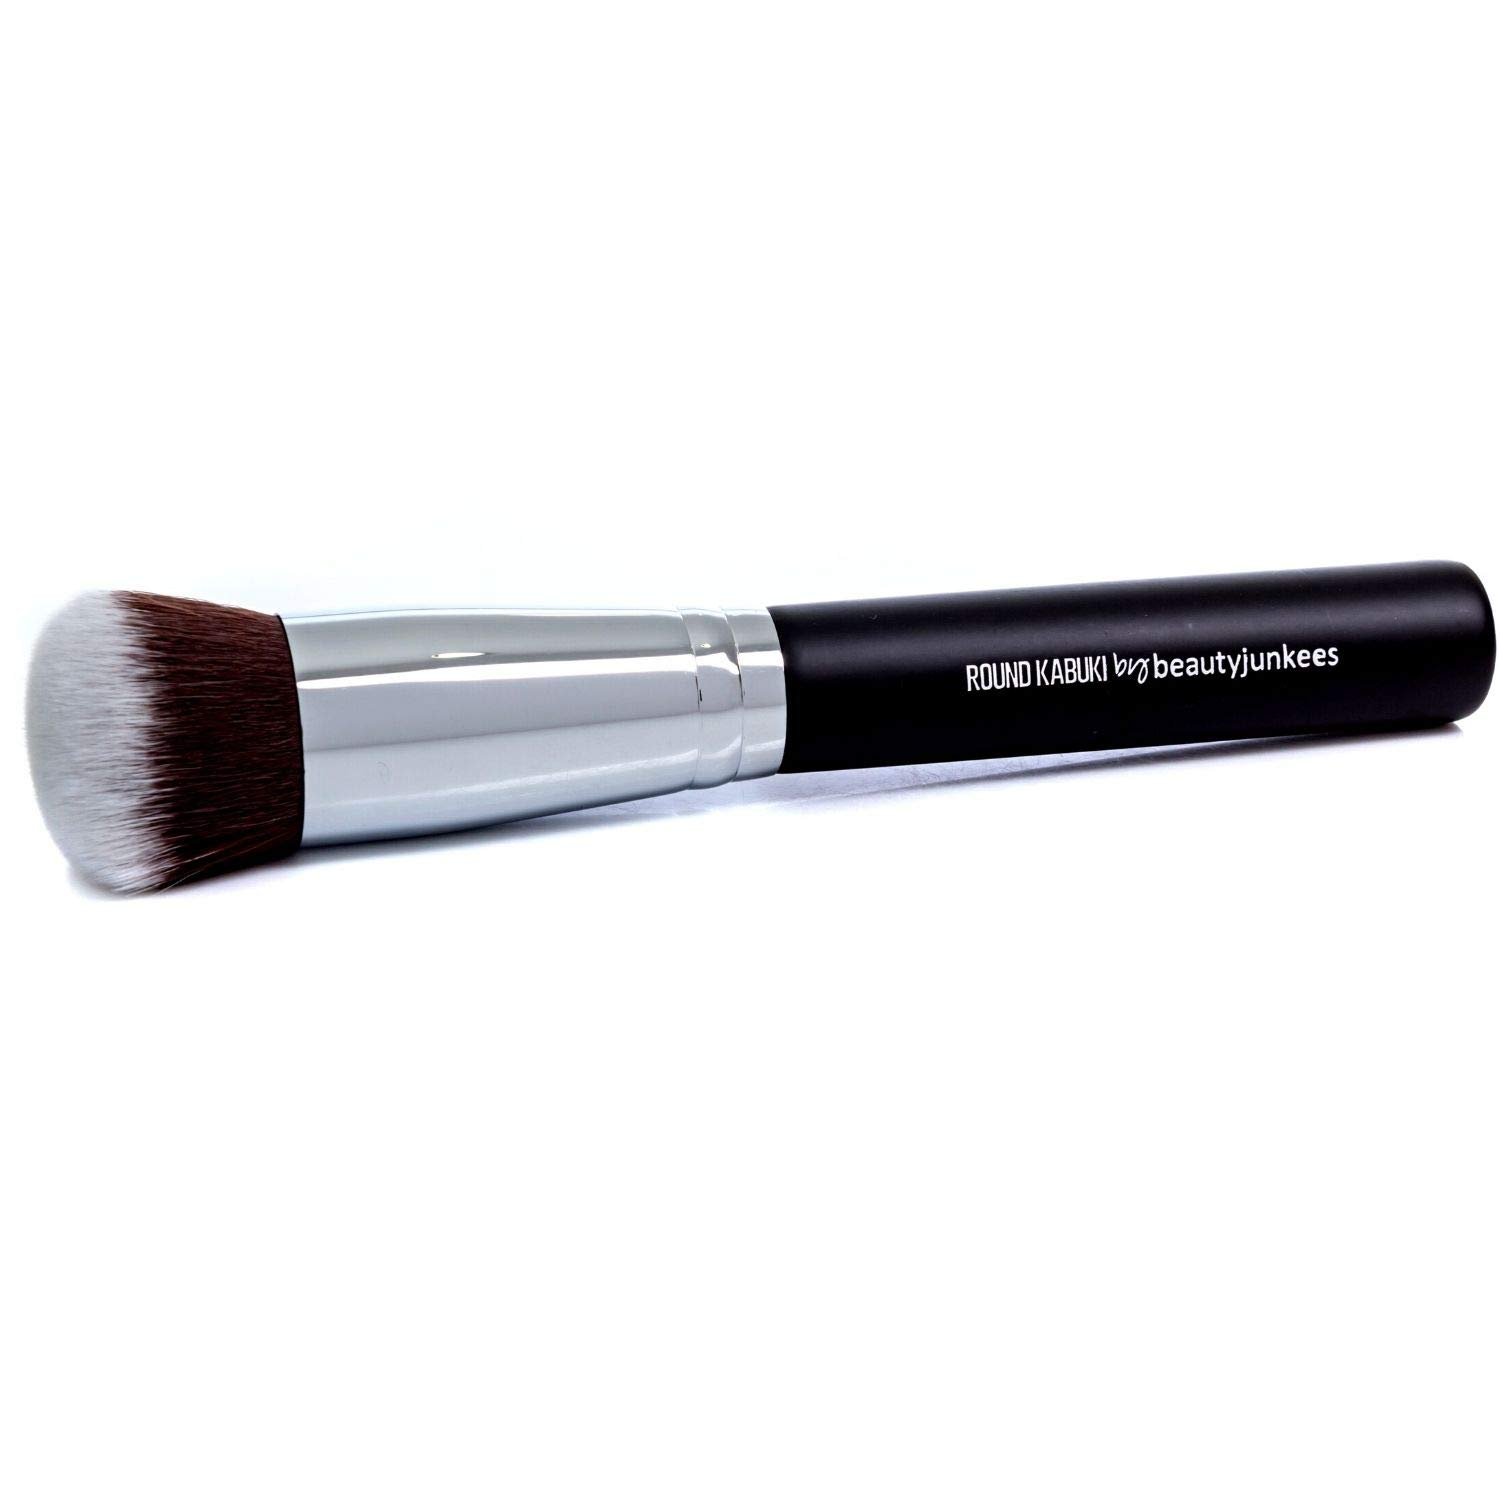 Mineral Powder Foundation Makeup Brush: Round Top Kabuki, Soft Dense Synthetic Bristles for Applying Loose Compact Pressed Translucent Minerals, Setting, Finishing, Buffing Liquid, Cream, Cruelty Free